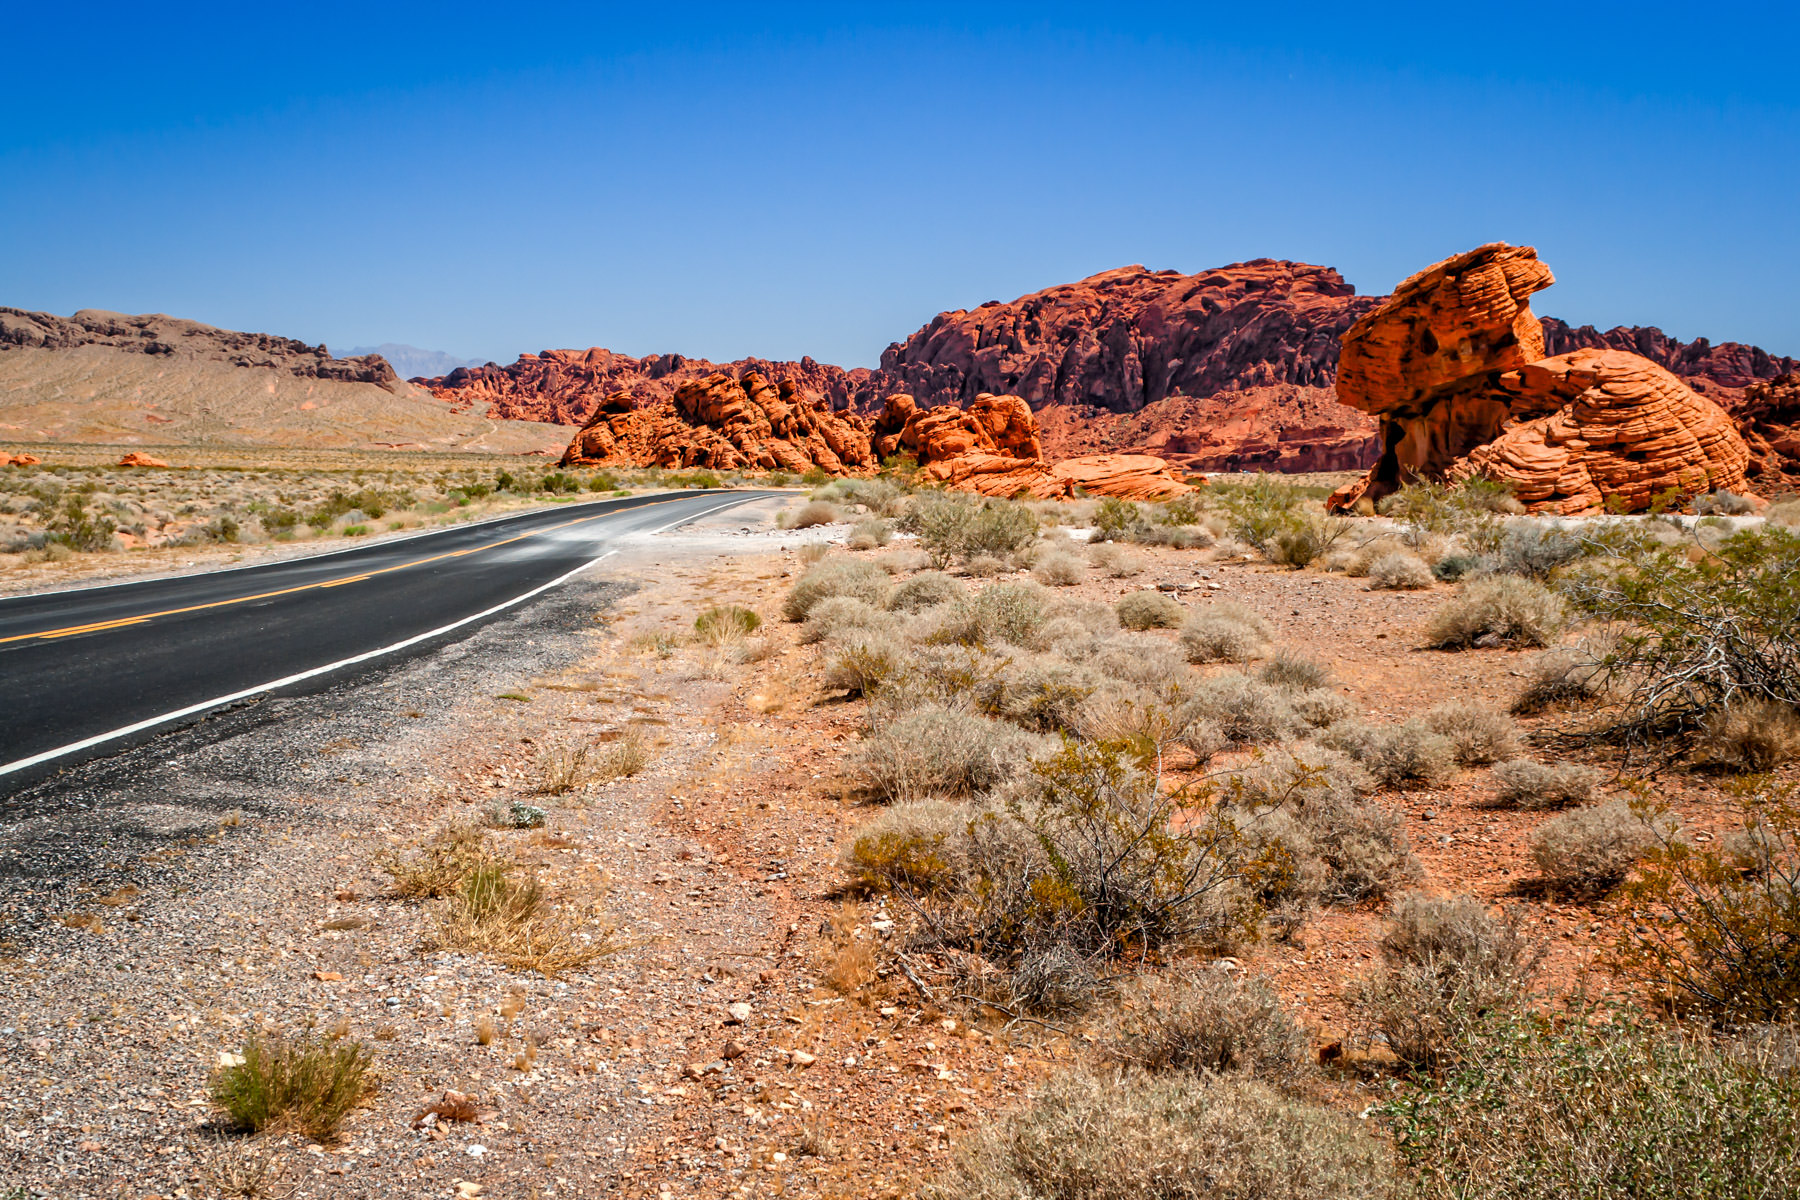 A road carves a path through the barren desert landscape of the Valley of Fire, Nevada.